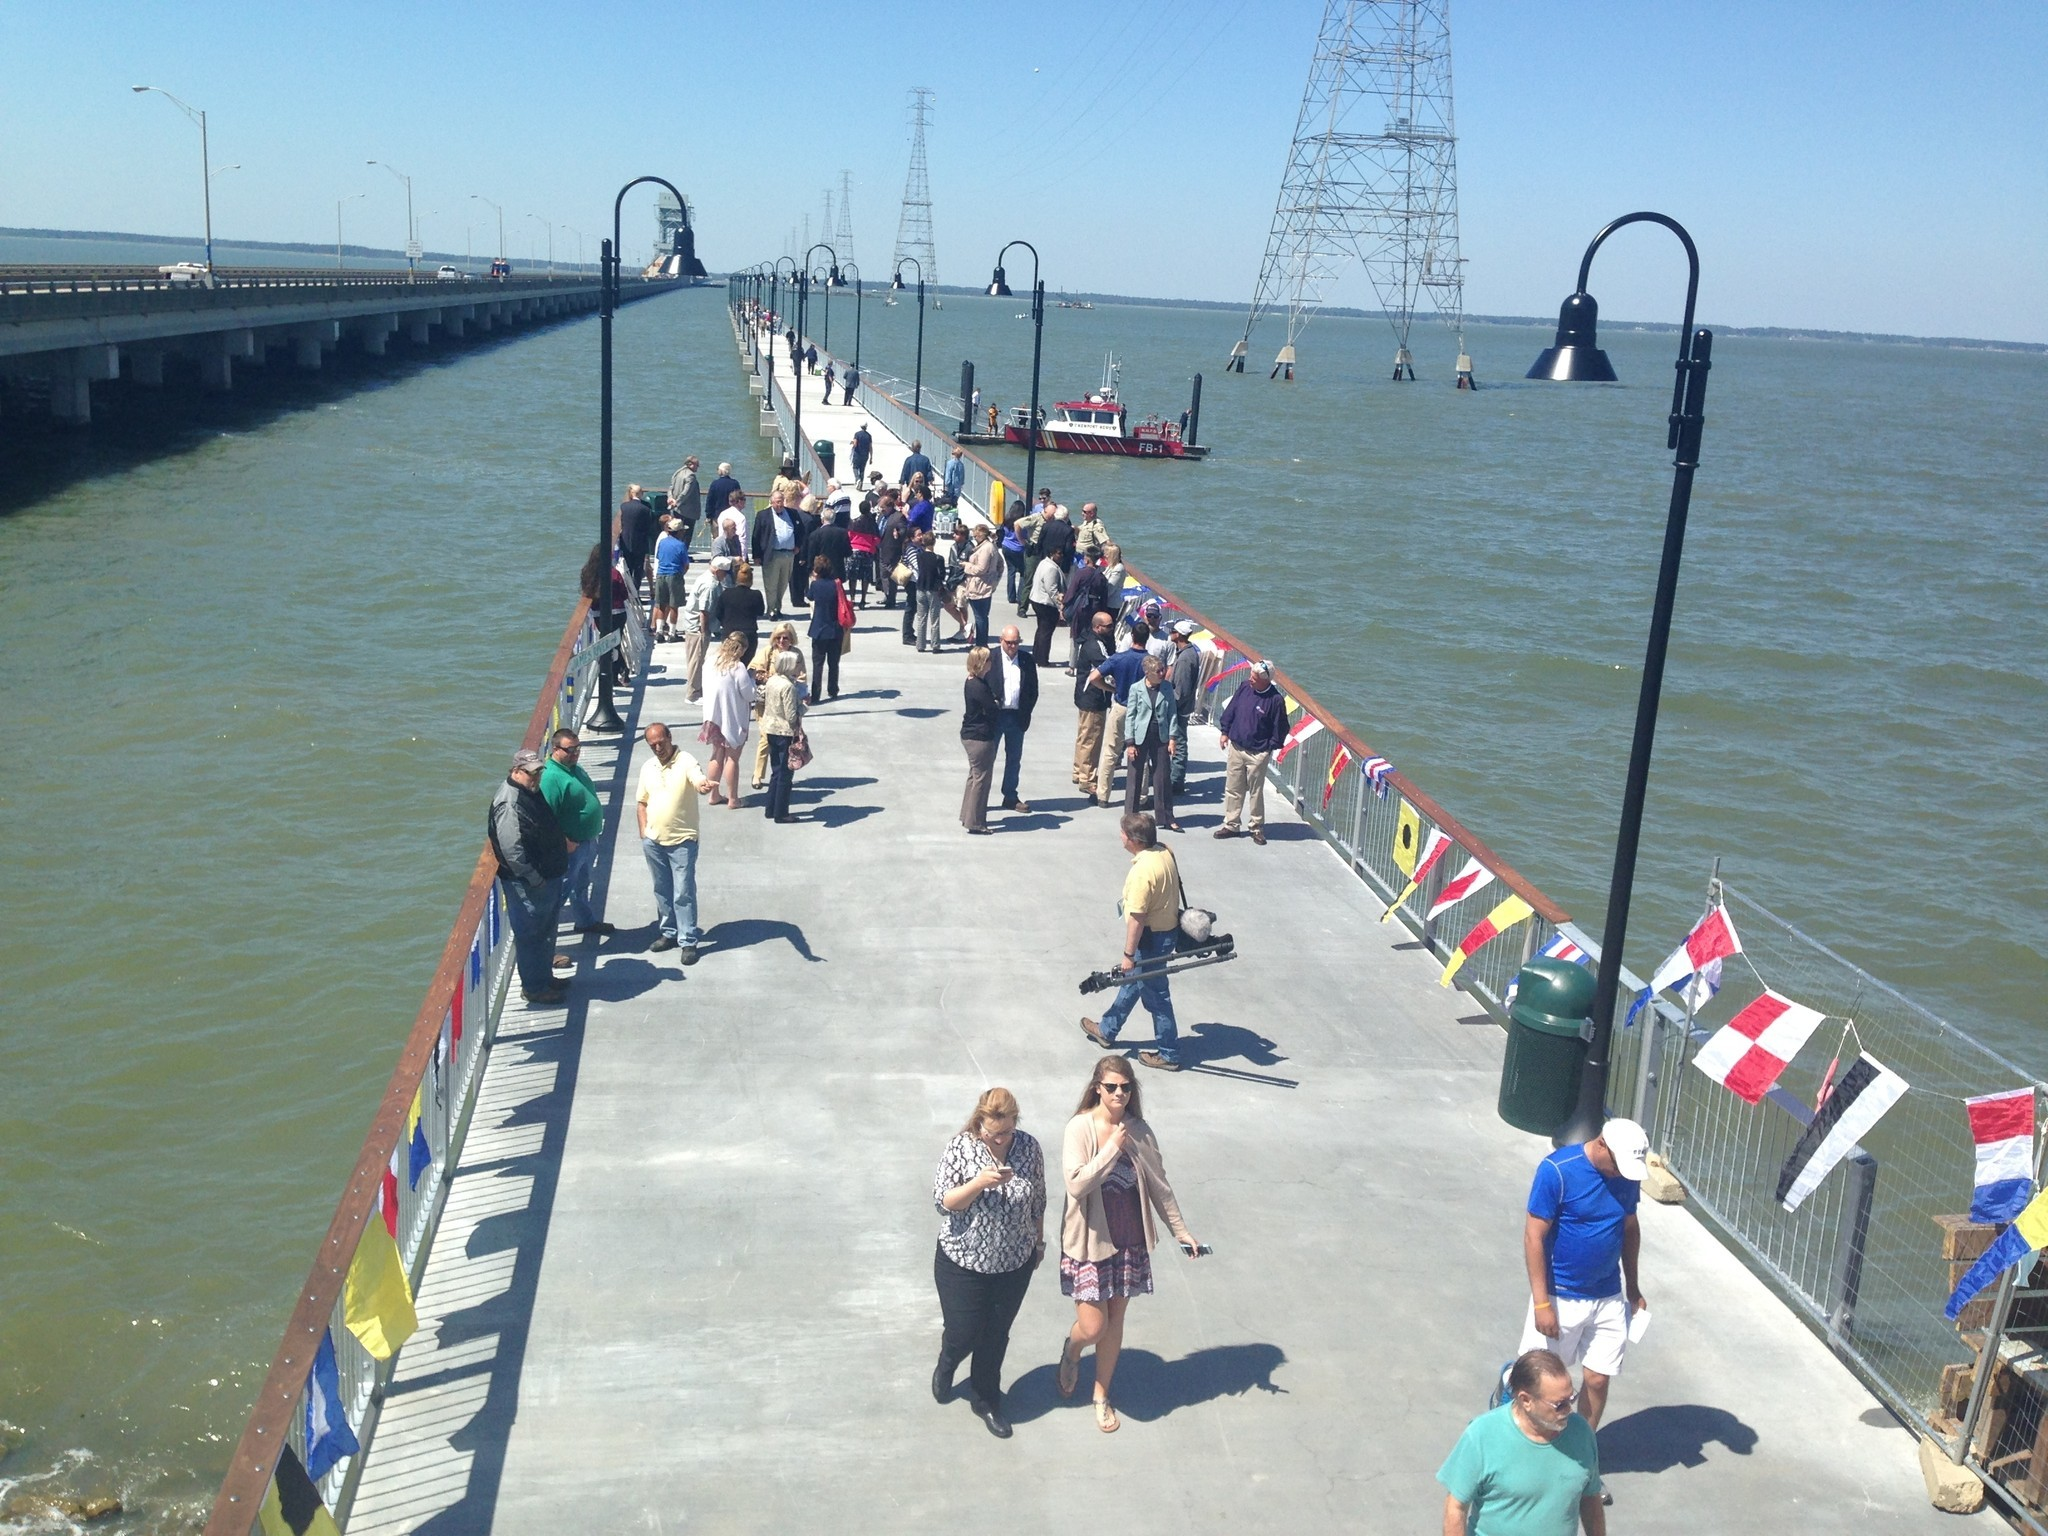 New james river fishing pier opens in newport news daily for James river bridge fishing pier